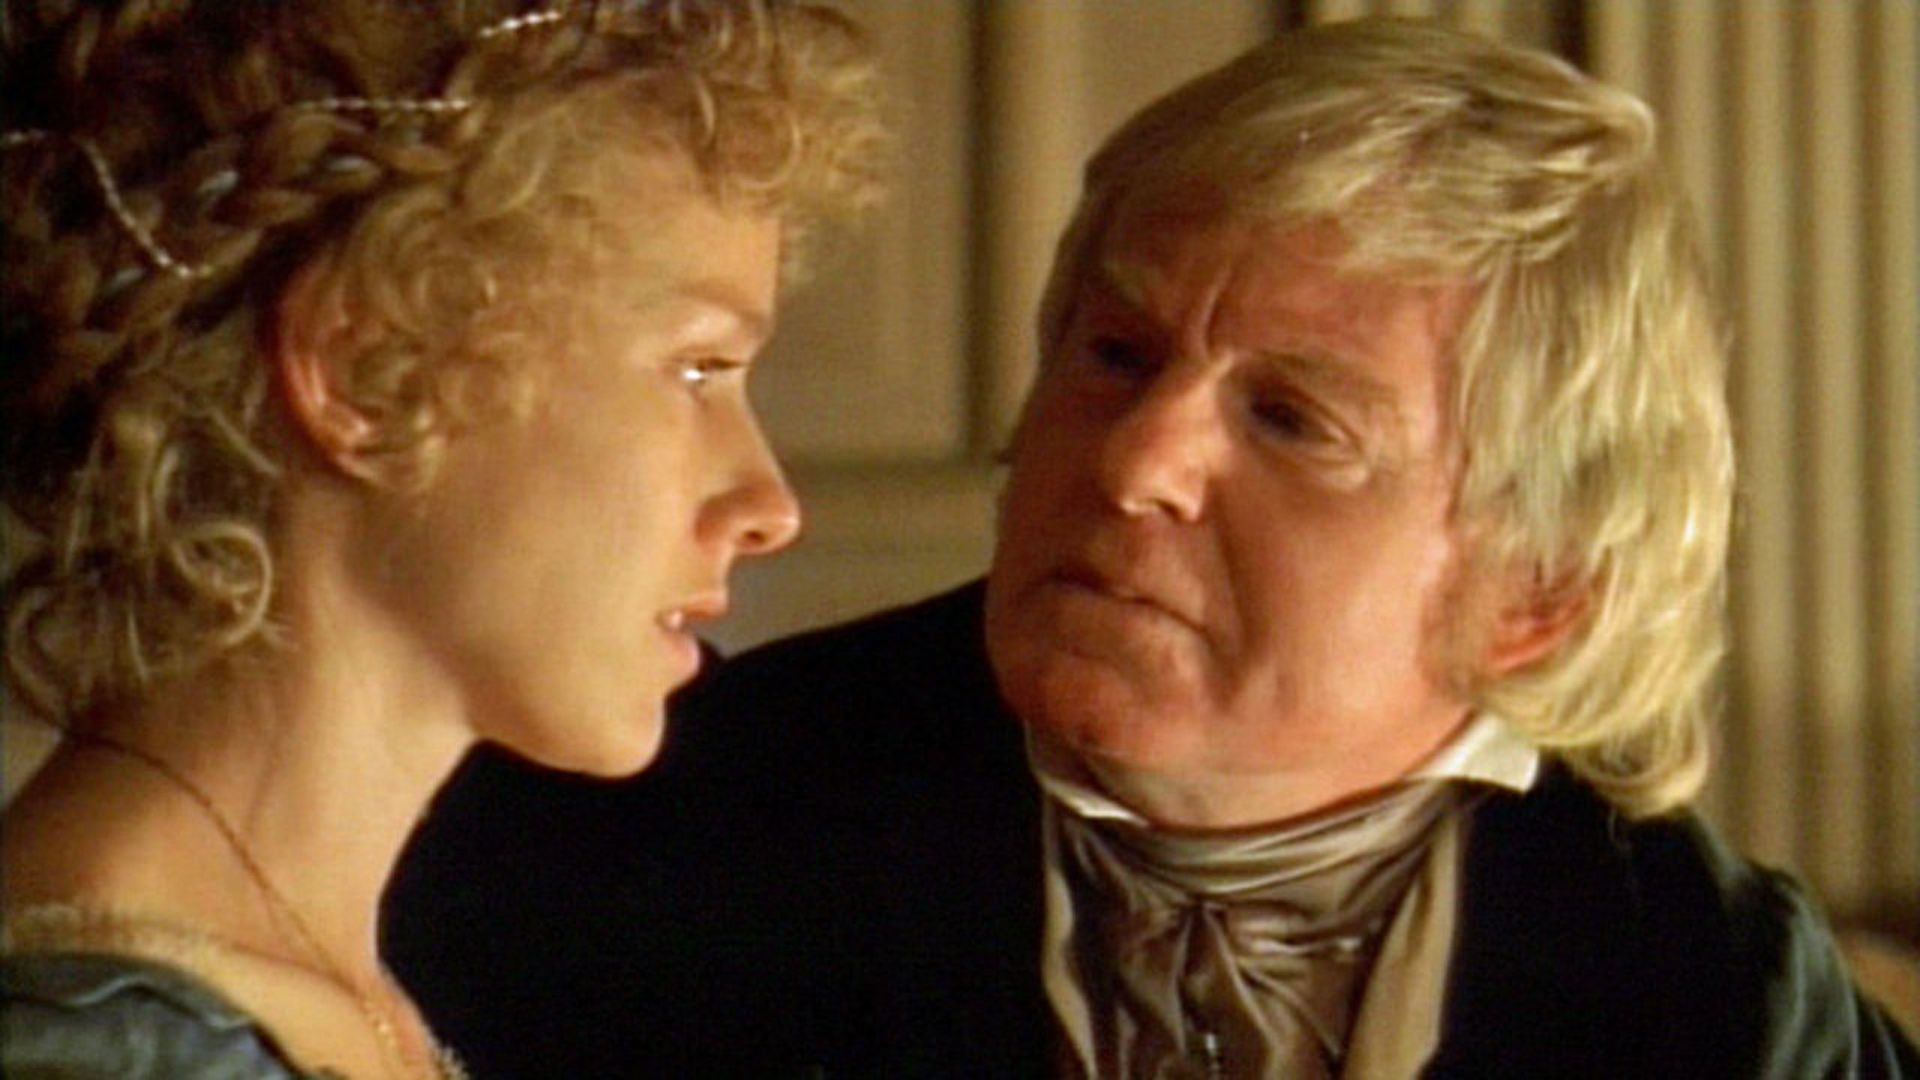 Alice Maybell (Naomi Watts) and the evil Squire Fairfield (Derej Jacobi) in The Wyvern Mystery (1999)